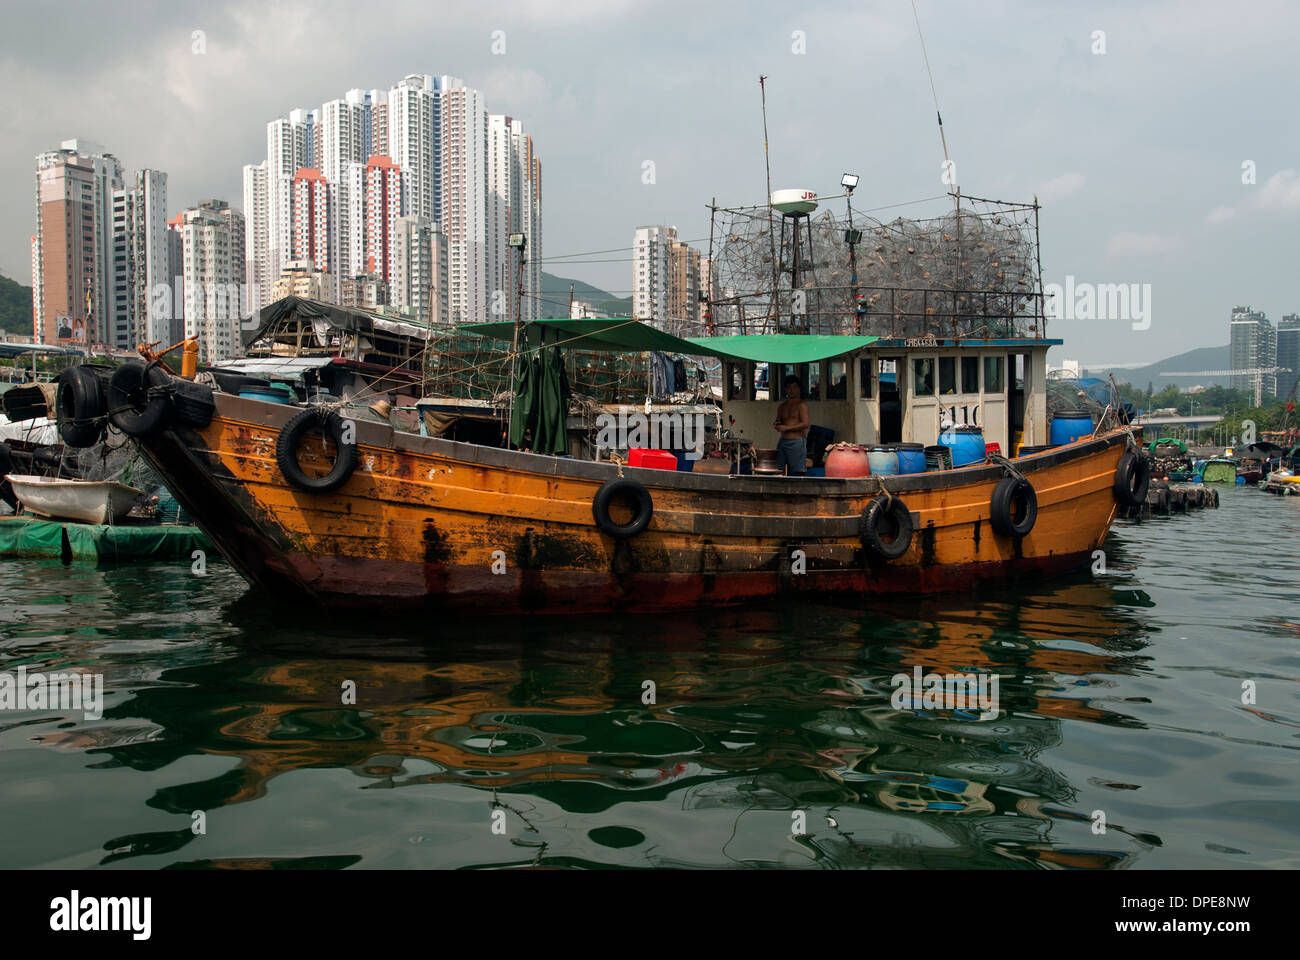 Junk sitting in the harbour of Aberdeen, Hong Kong China - Stock Image